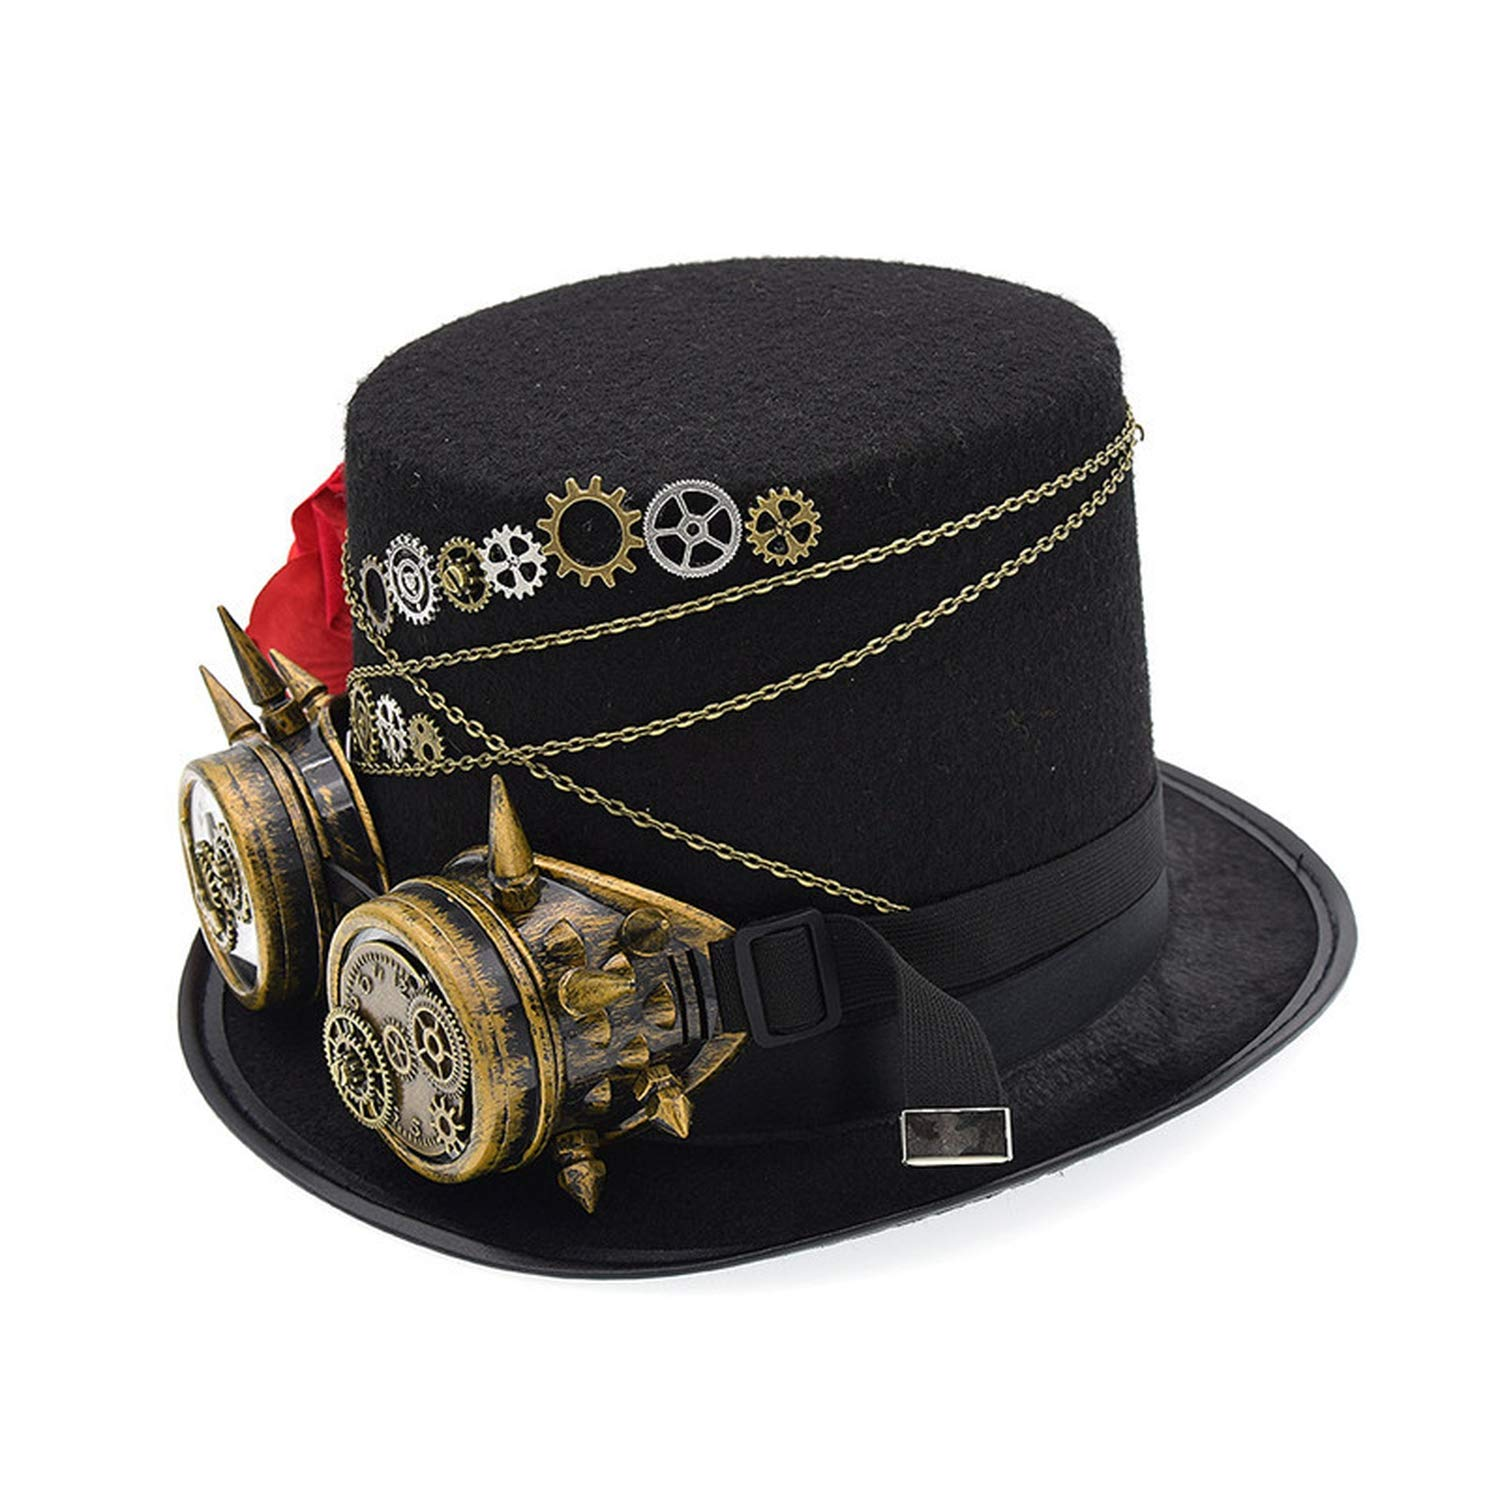 Vintage Steampunk Hat Floral Women Men Party Fedoras Caps Fashion Trendy Unisex Apparel Accessories Headwear